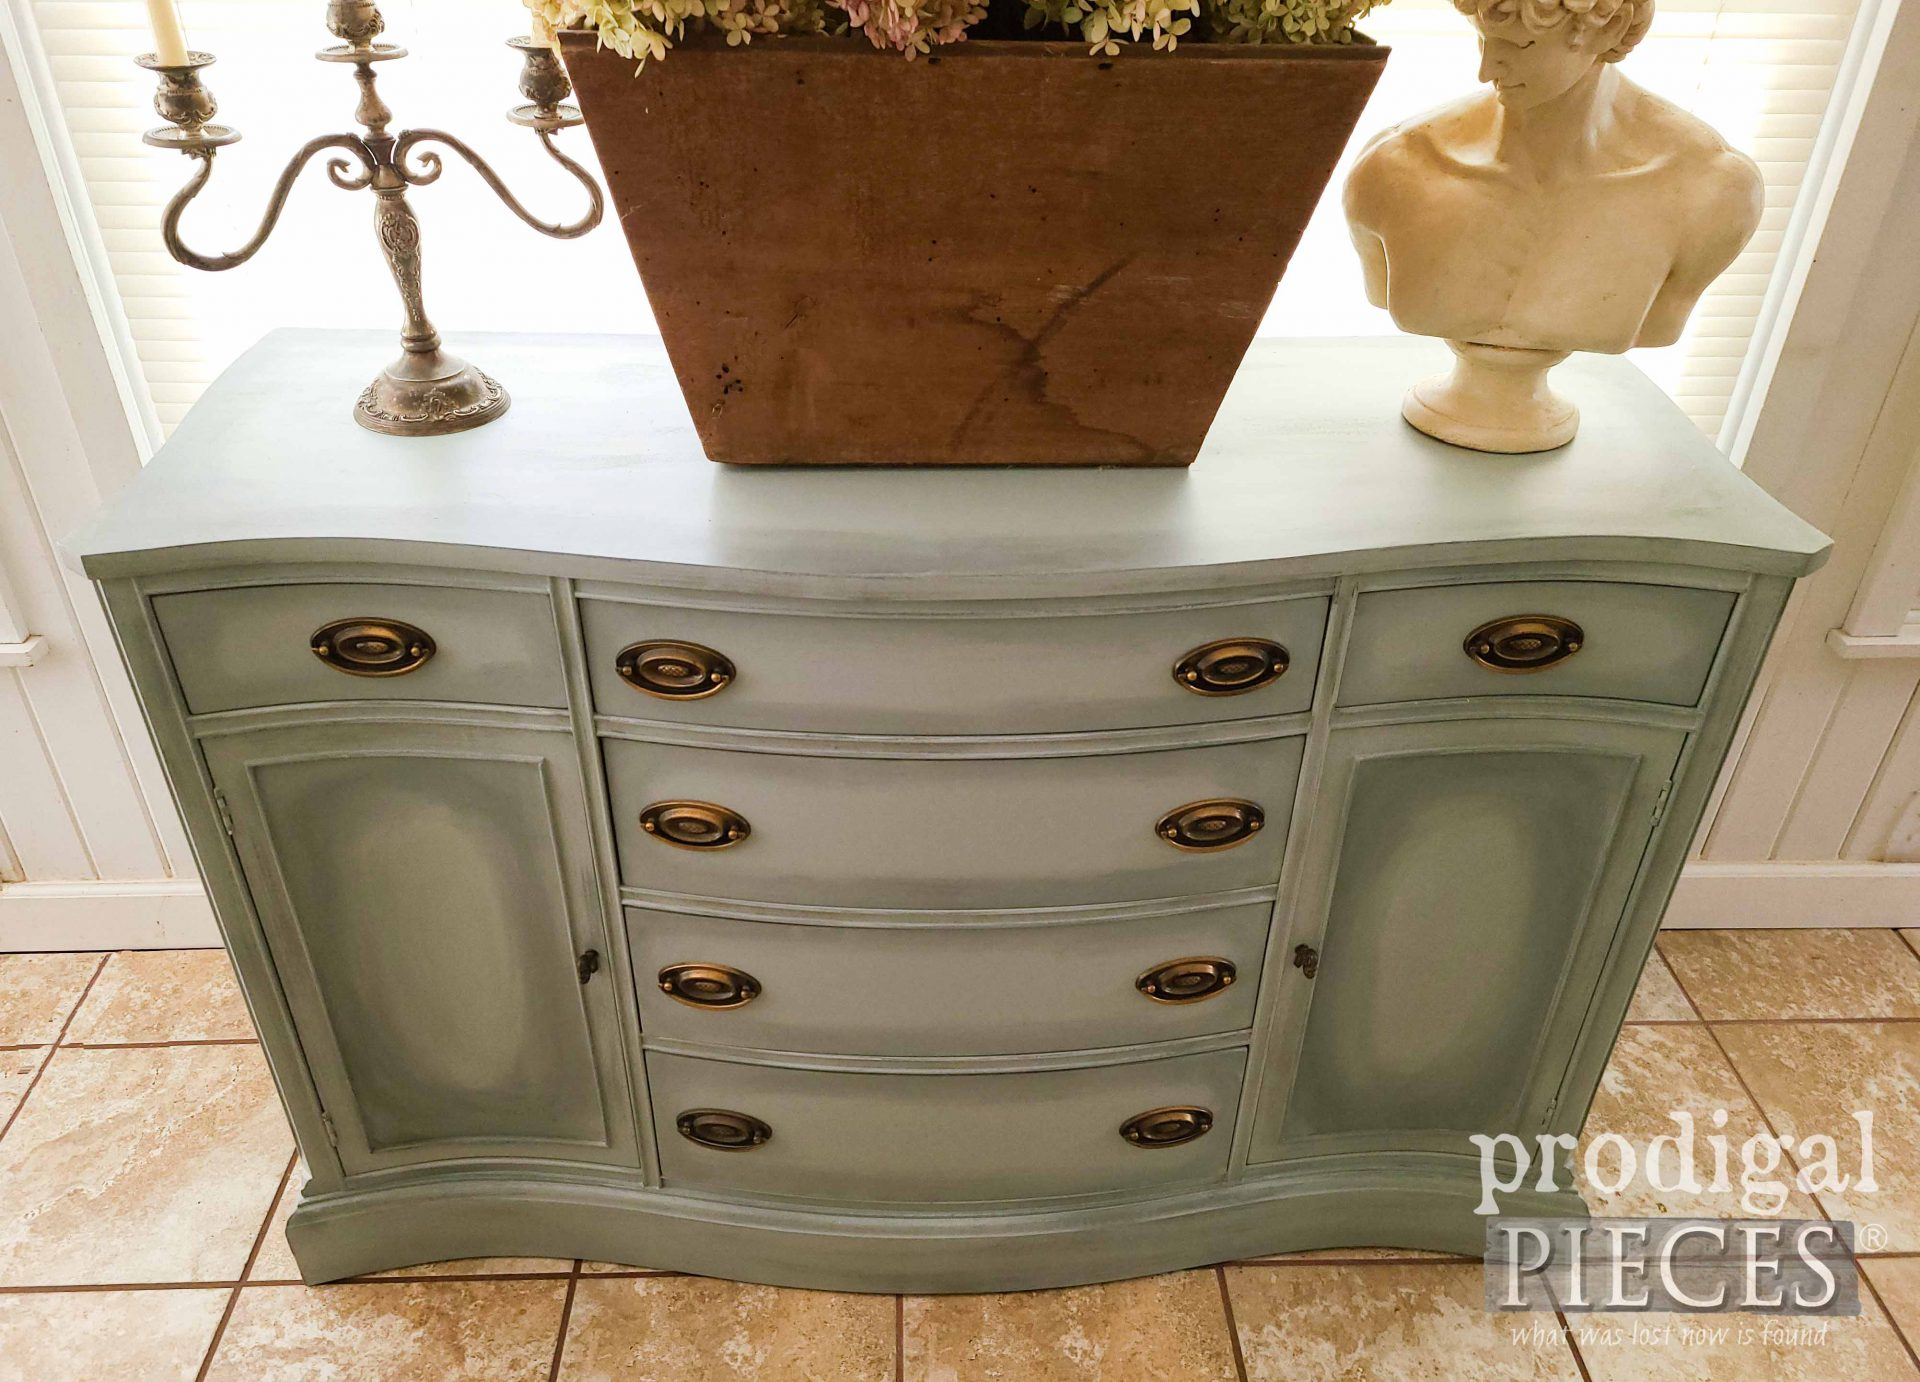 Top View of Vintage Bassett Buffet by Larissa of Prodigal Pieces | prodigalpieces.com #prodigalpieces #furniture #home #homedecor